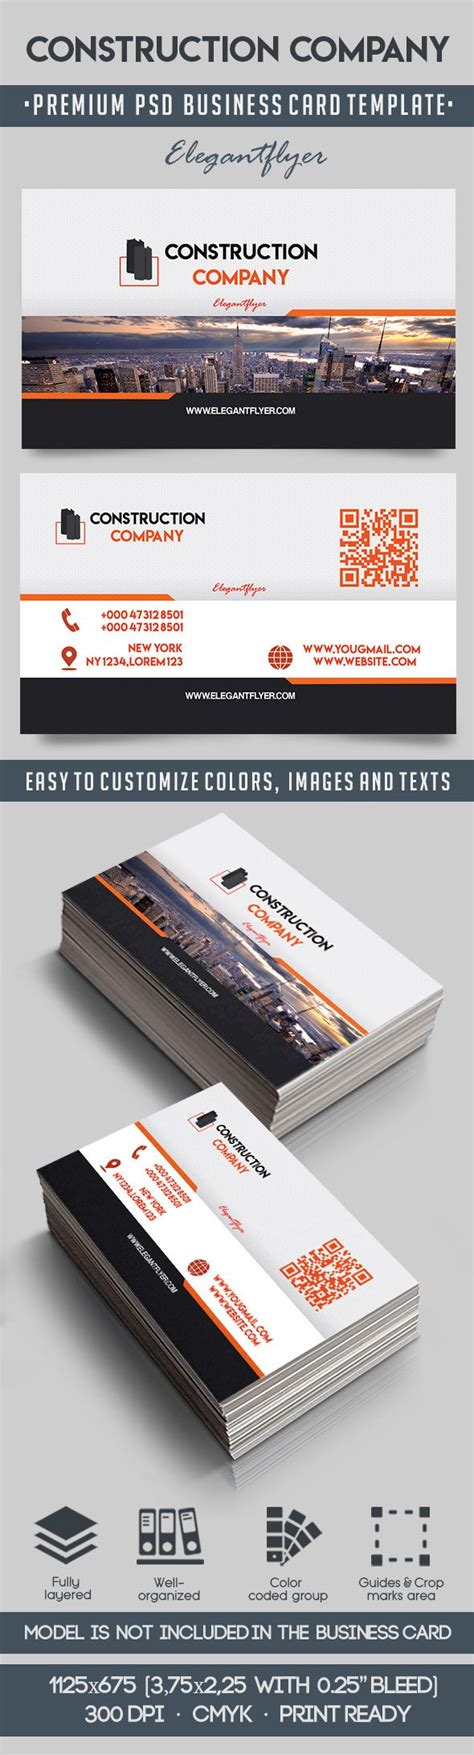 construction business card template psd construction company psd business card by elegantflyer